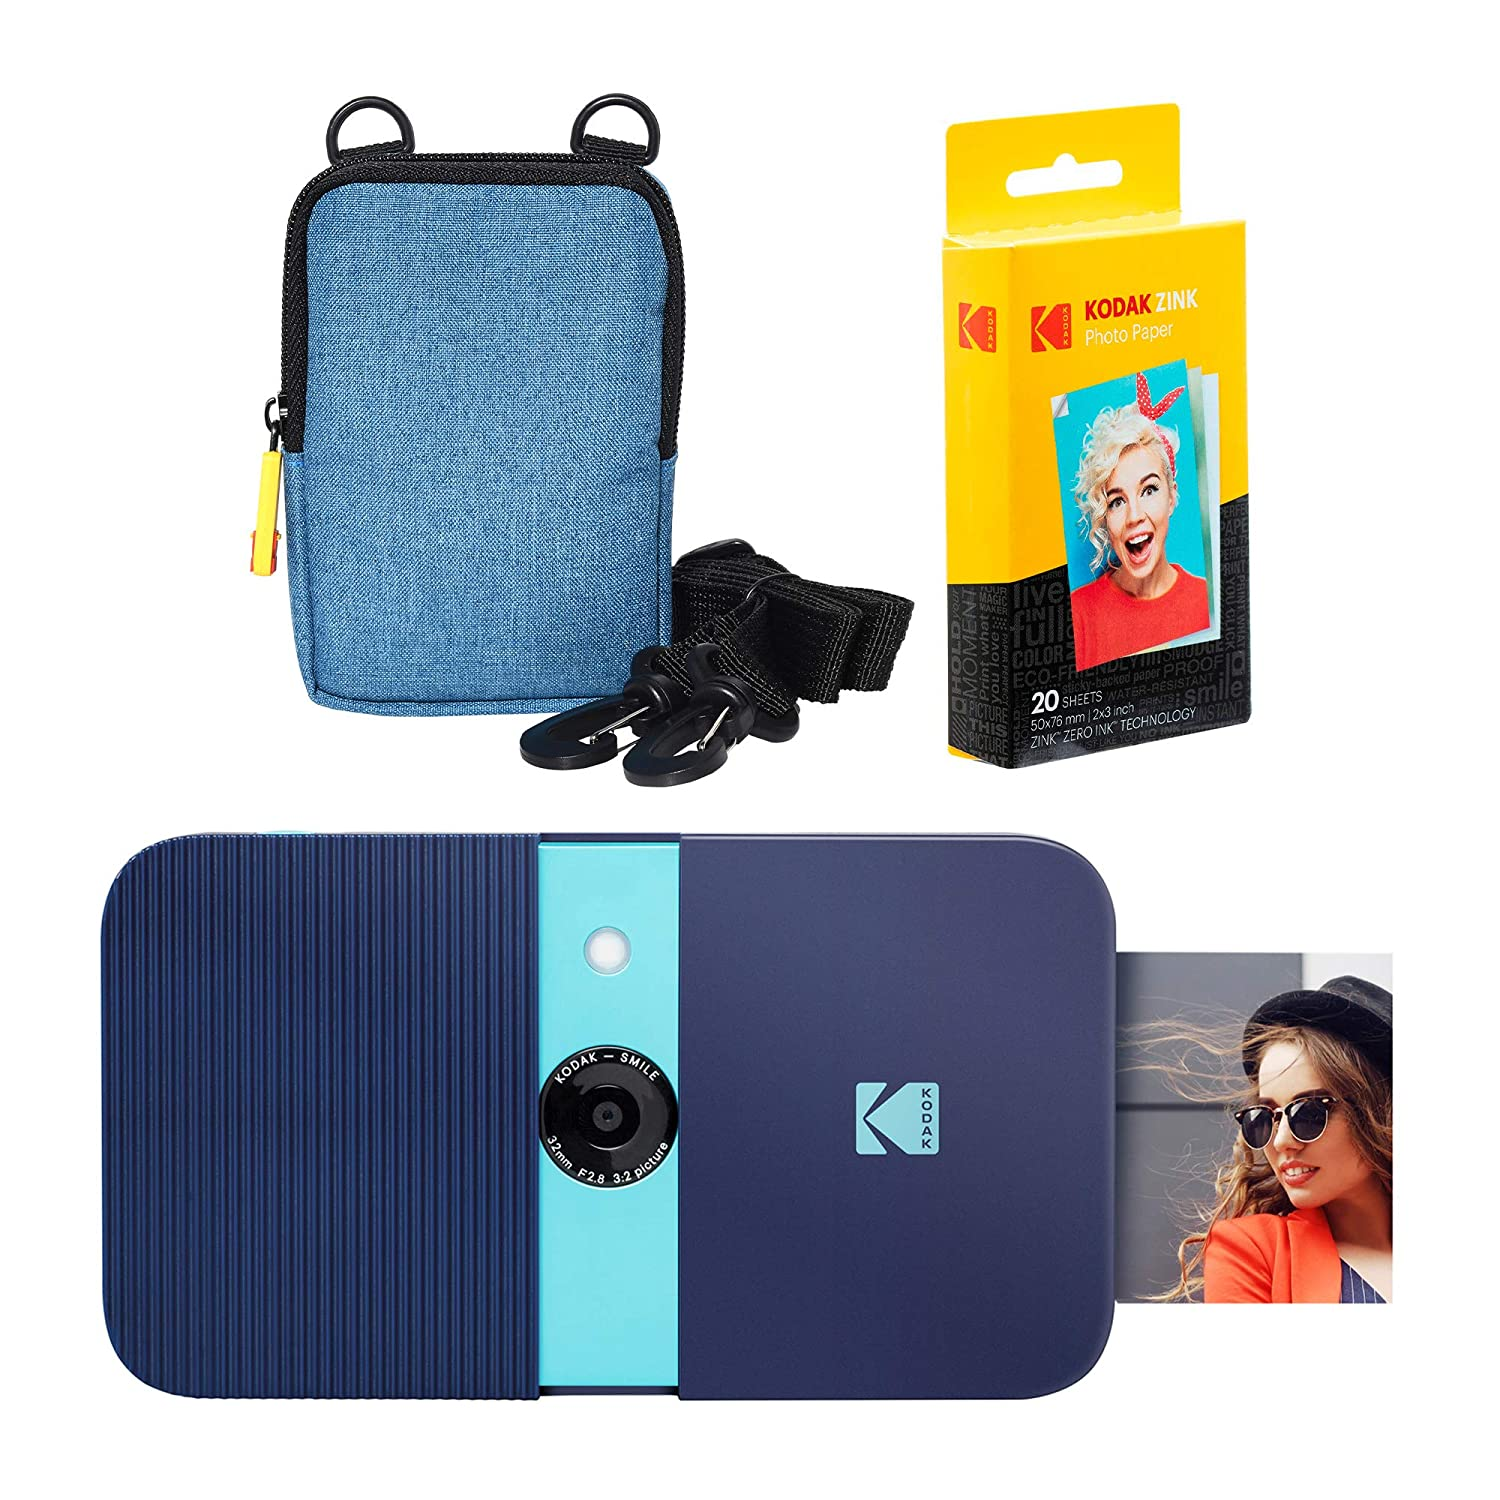 KODAK Smile Impresora Digital instantánea (Azul) Soft Case Kit ...